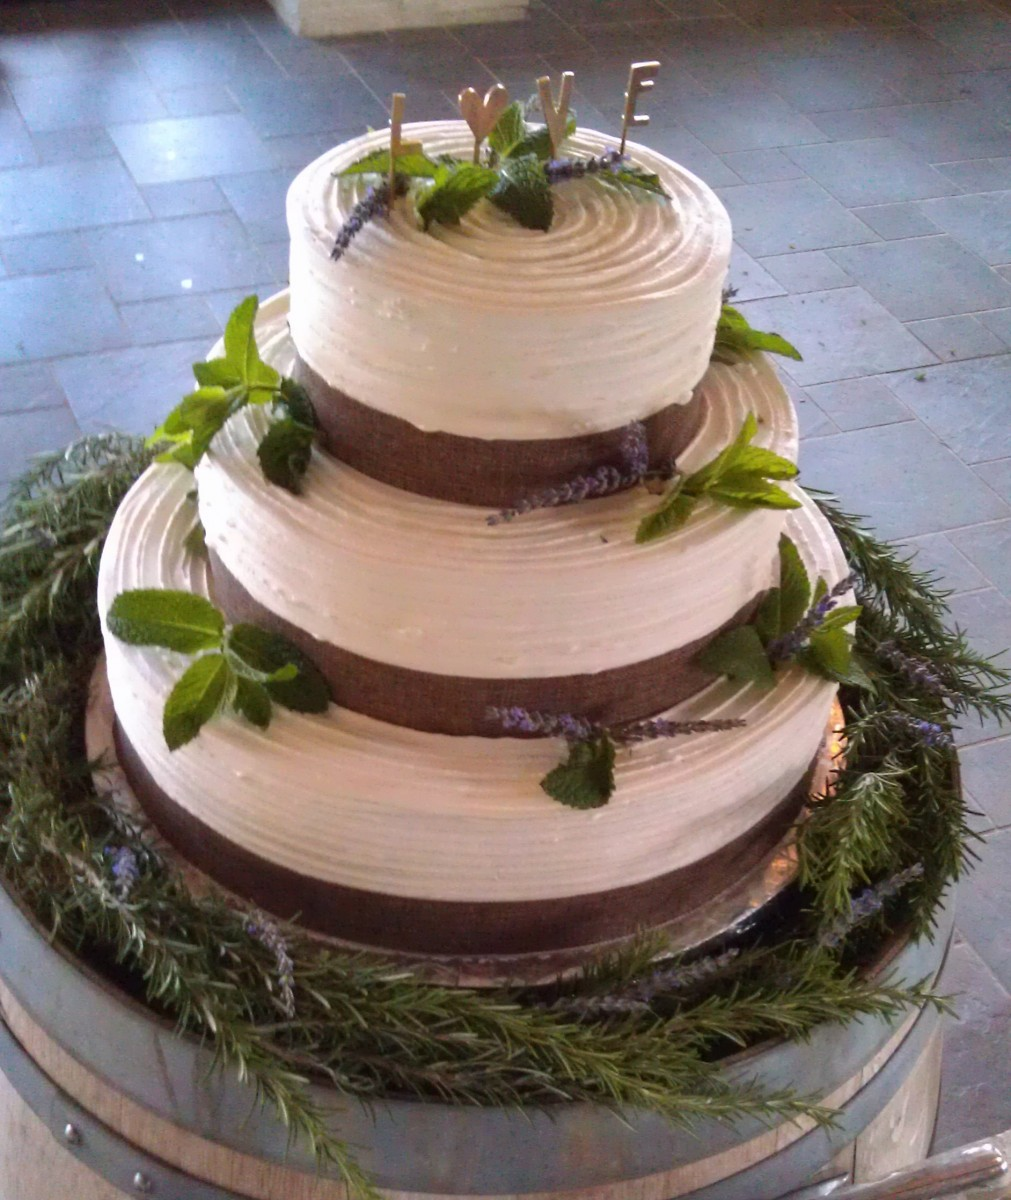 Adorned with fresh rosemary